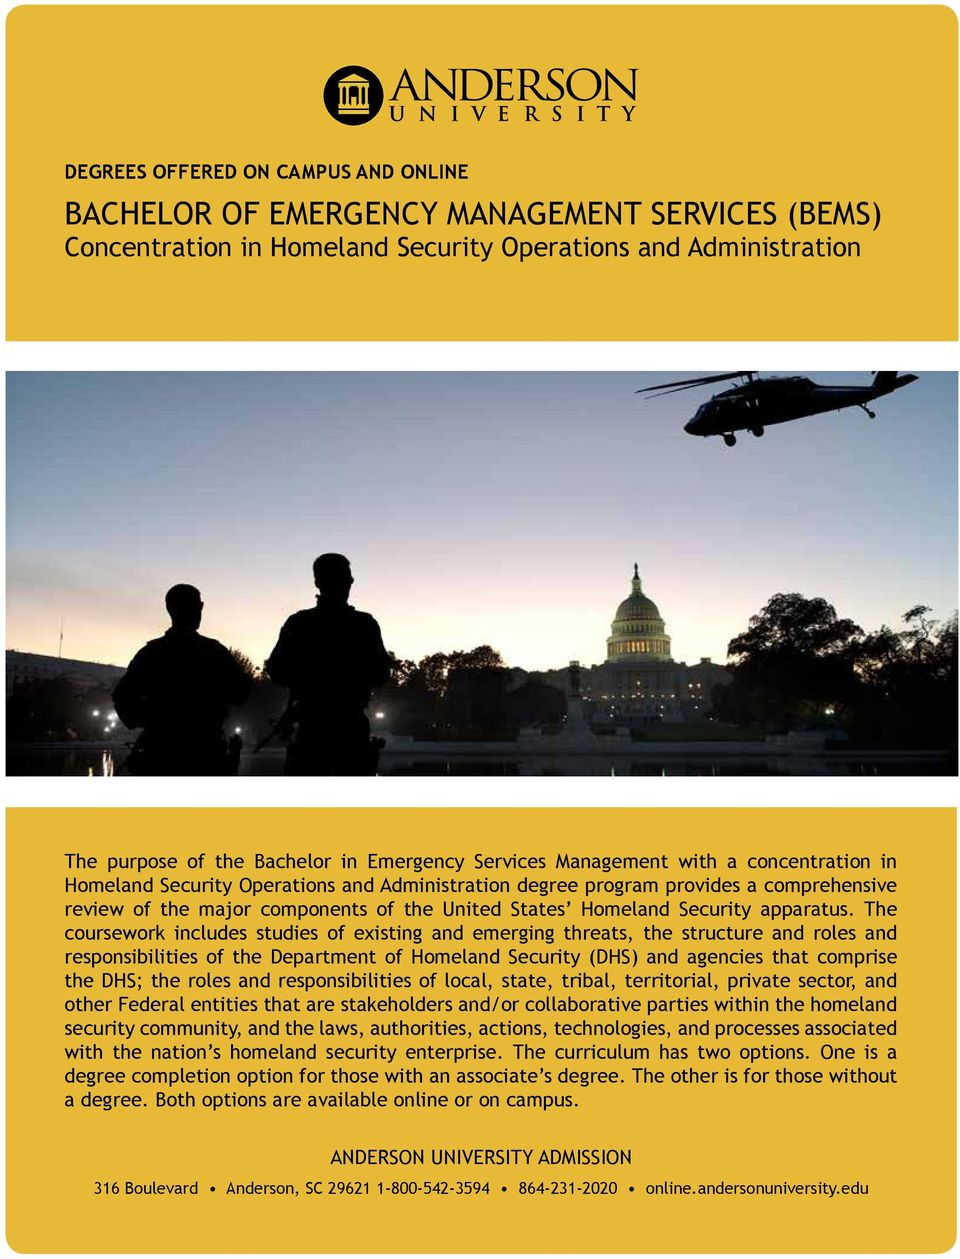 The coursework includes studies of existing and emerging threats, the structure and roles and responsibilities of the Department of Homeland Security (DHS) and agencies that comprise the DHS; the